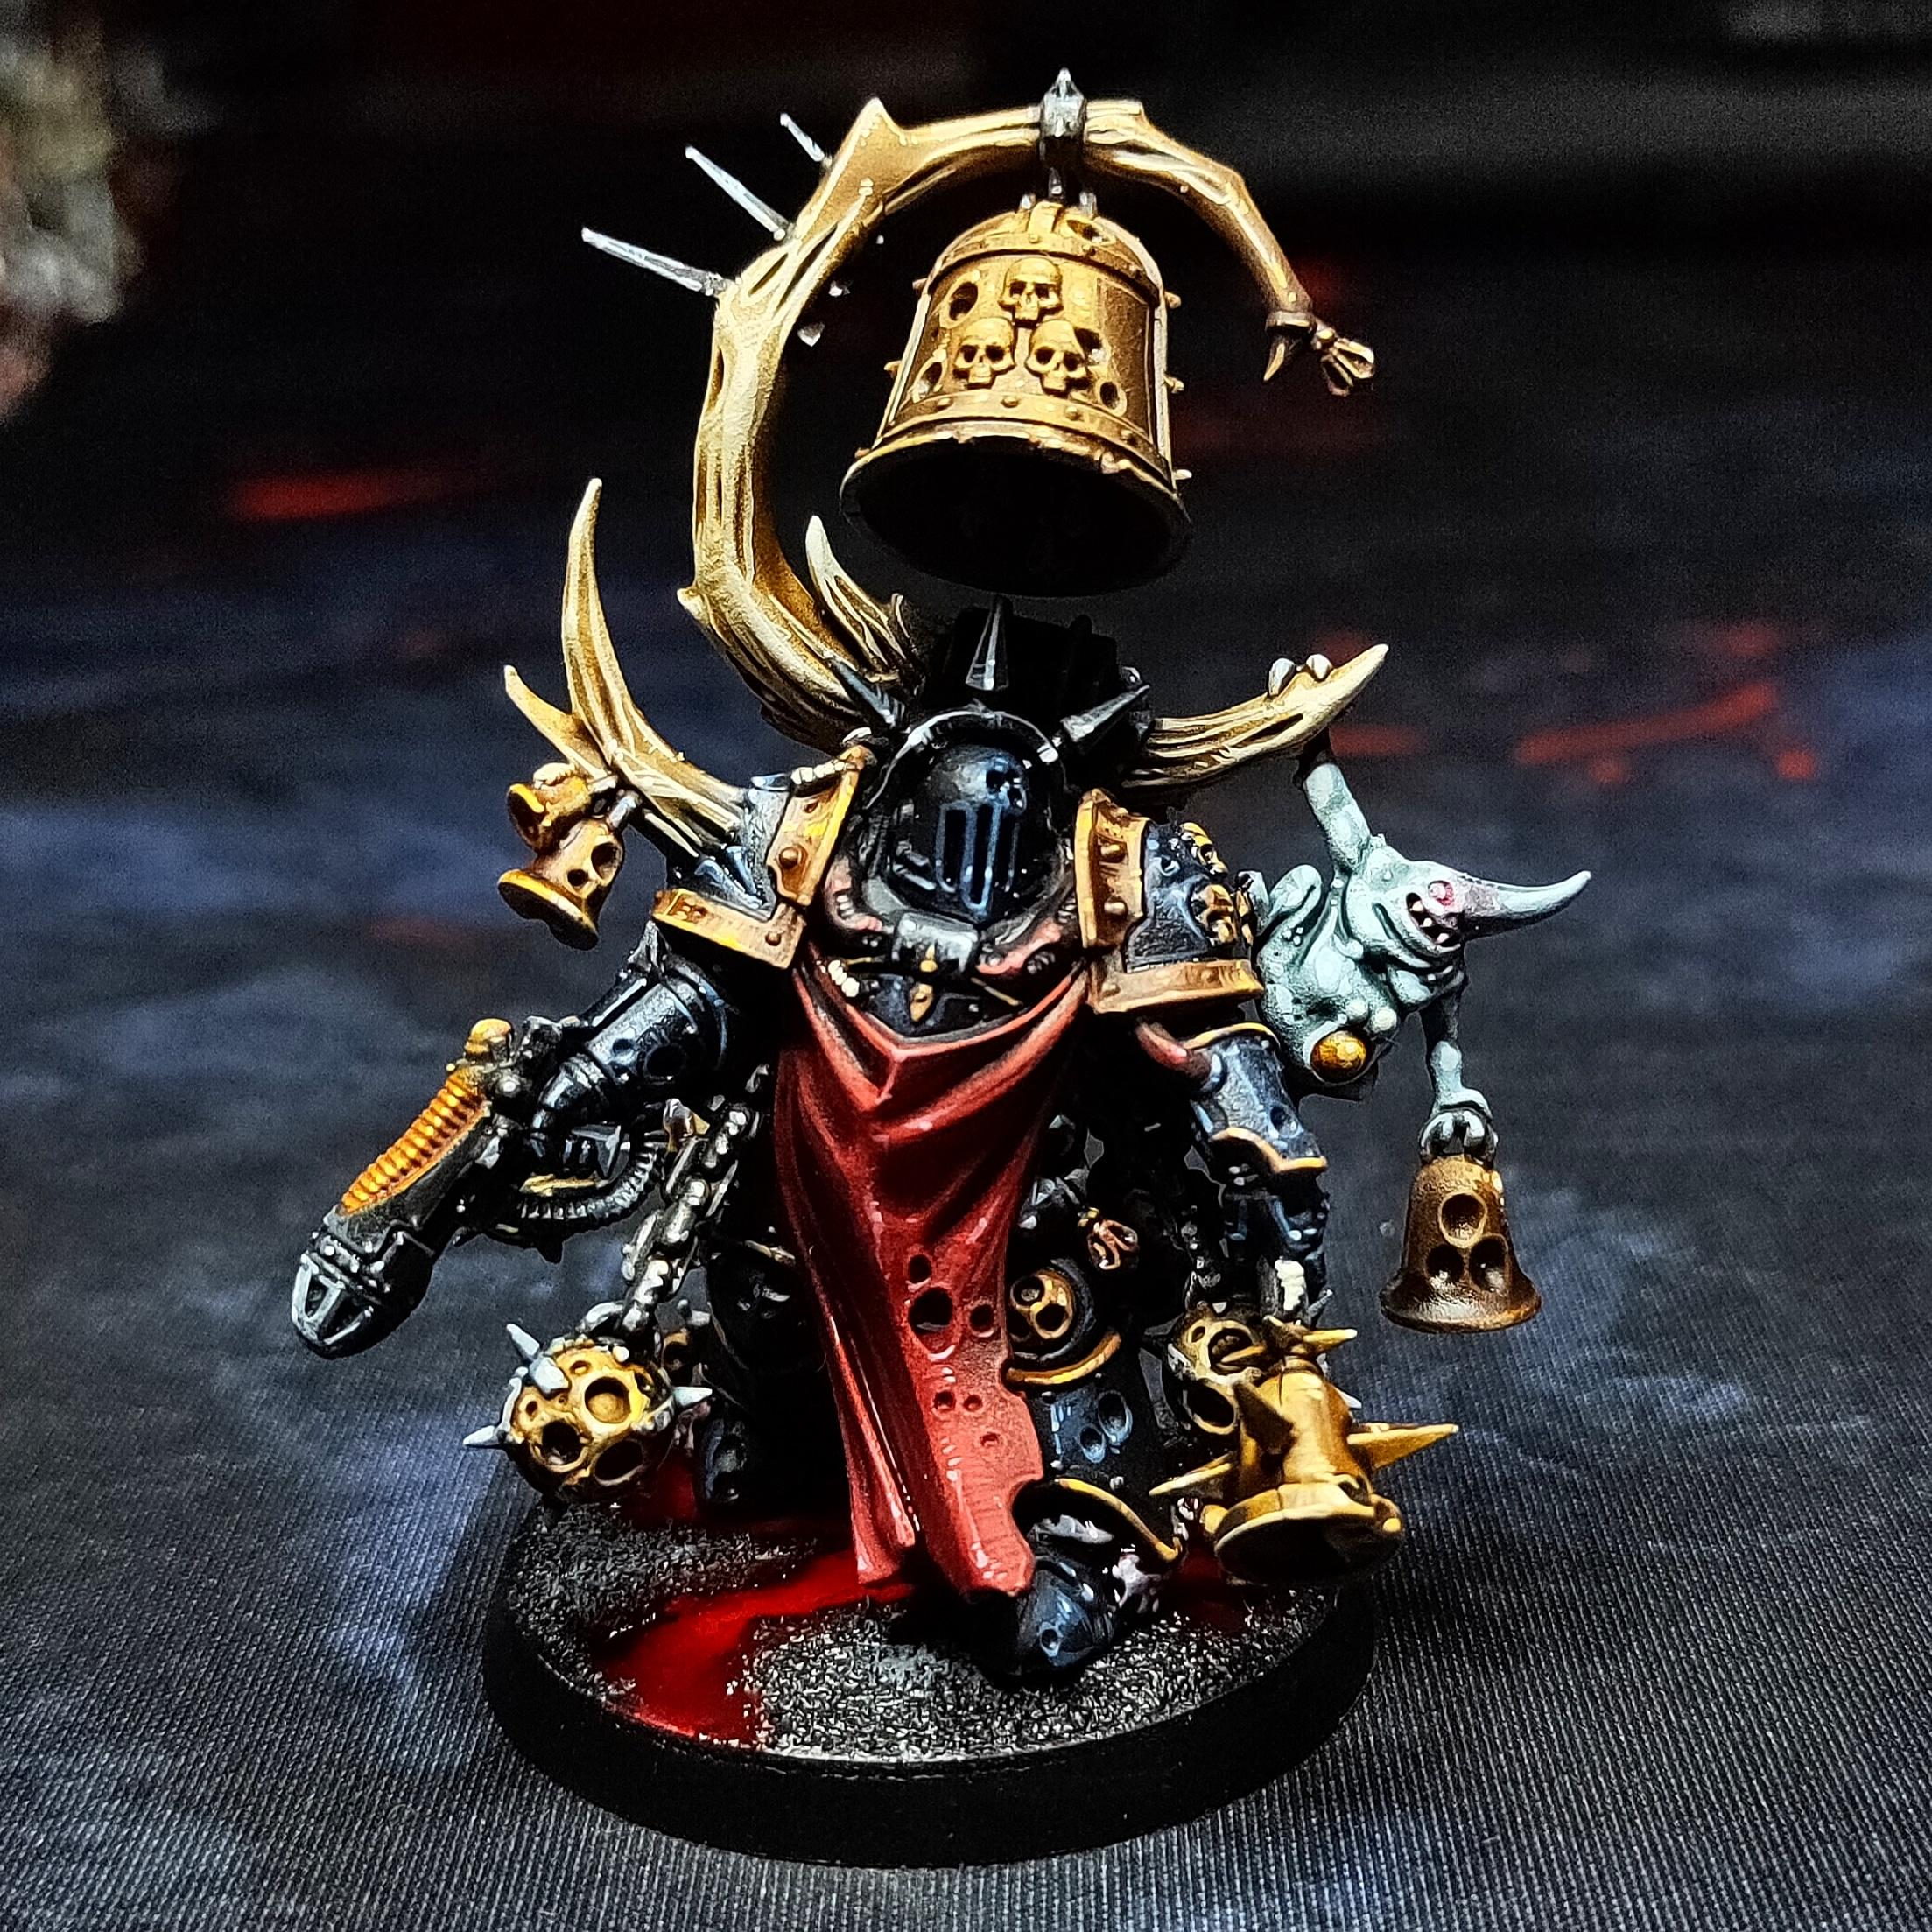 Black Legion, Bringers Of Decay, Chaos, Chaos Knight, Chaos Space Marines, Chaos Undivided, Dark Imperium, Death Guard, Heretic Astartes, Noxious Blightbriger, Plague Marines, Sin Eaters, Warhammer 40,000